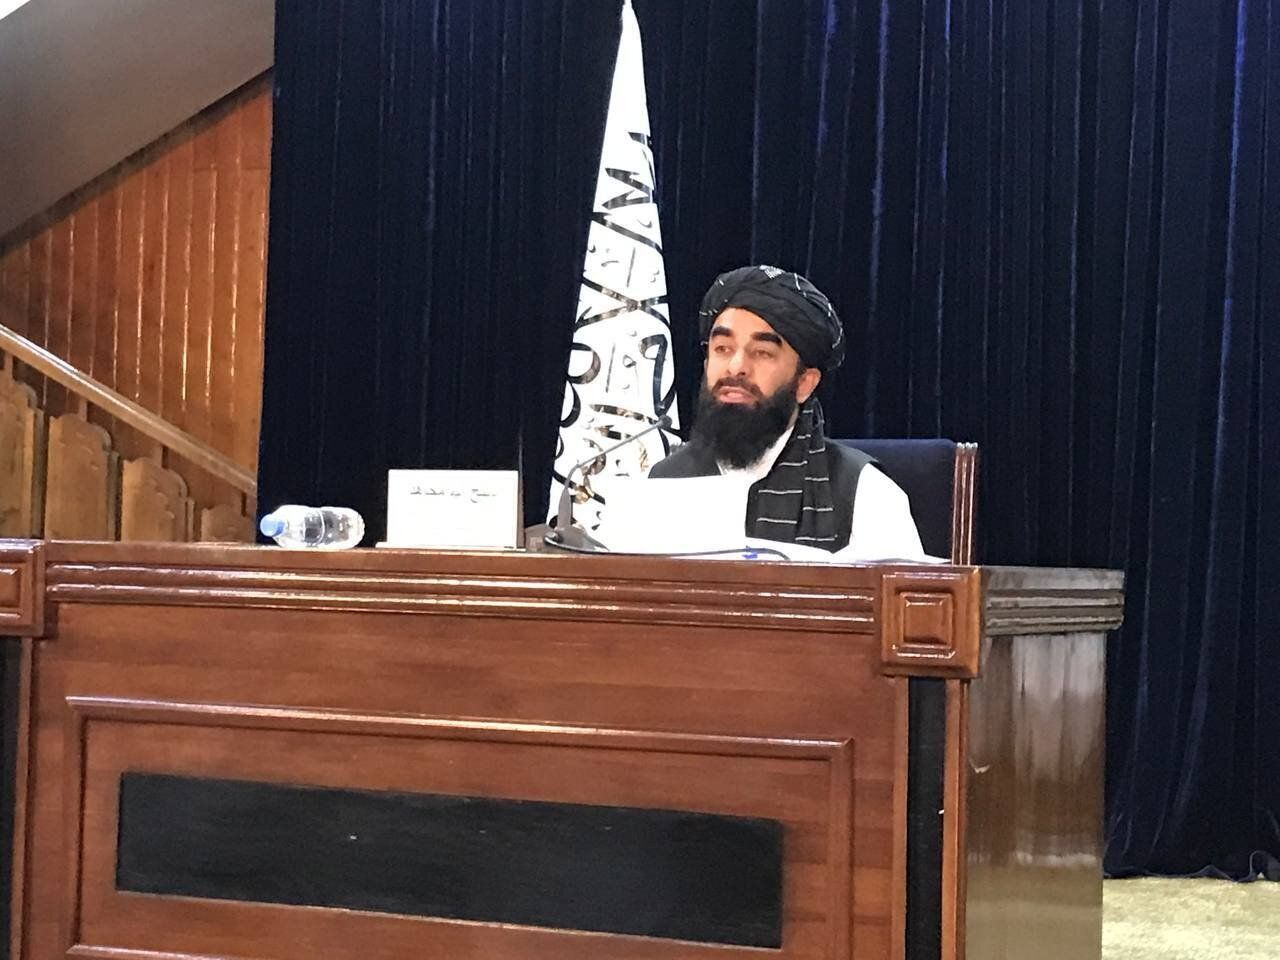 Taliban spokesperson Zabihullah Mujahid holds a press conference in Kabul, Afghanistan on Sept. 7.